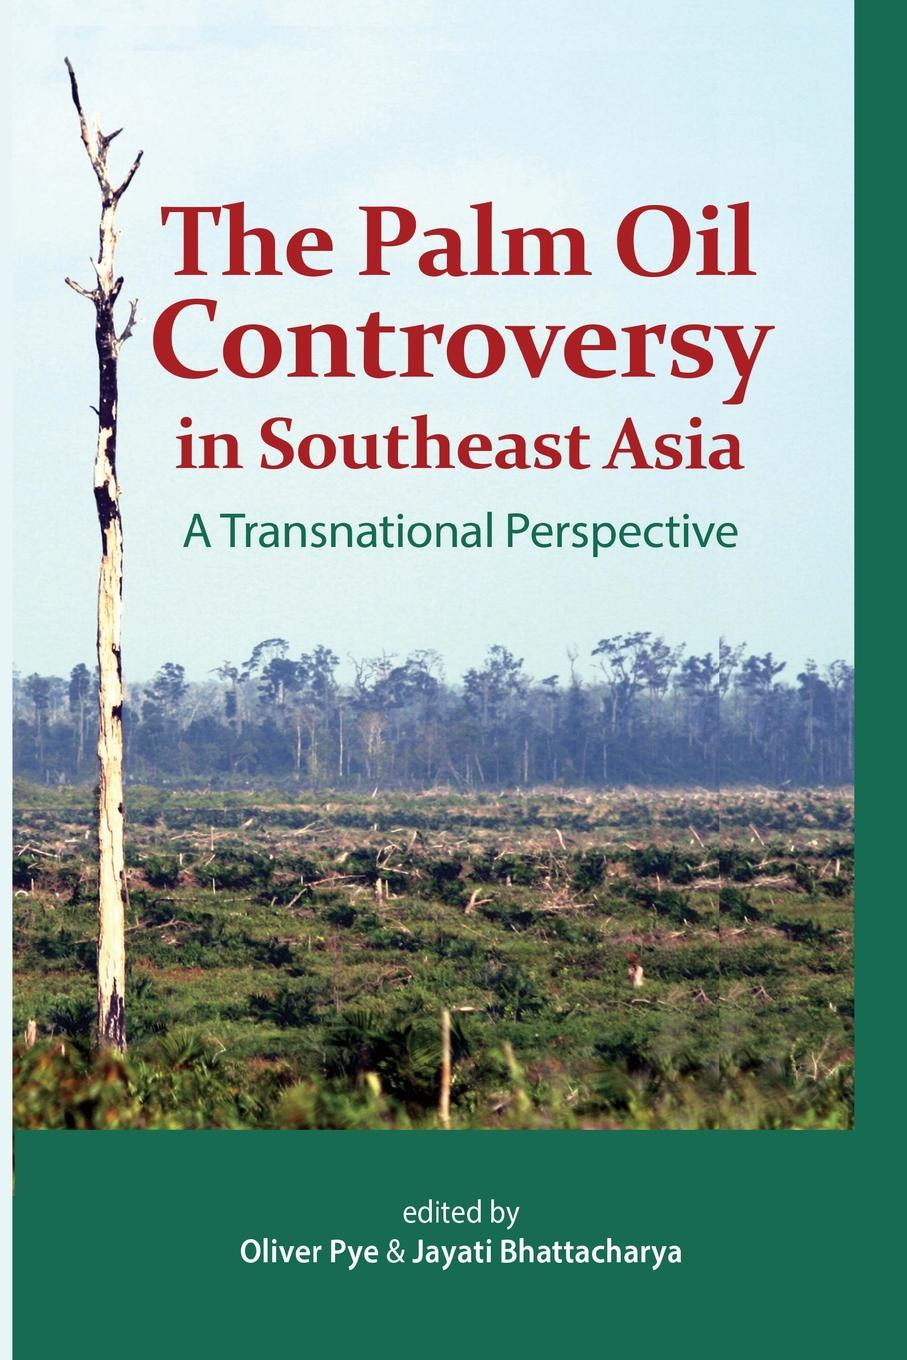 The Palm Oil Controversy in Southeast Asia. A Transnational Perspective waya phutdhawong melissa agustin and weerachai phutdhawong utilization of palm oil mill wastes